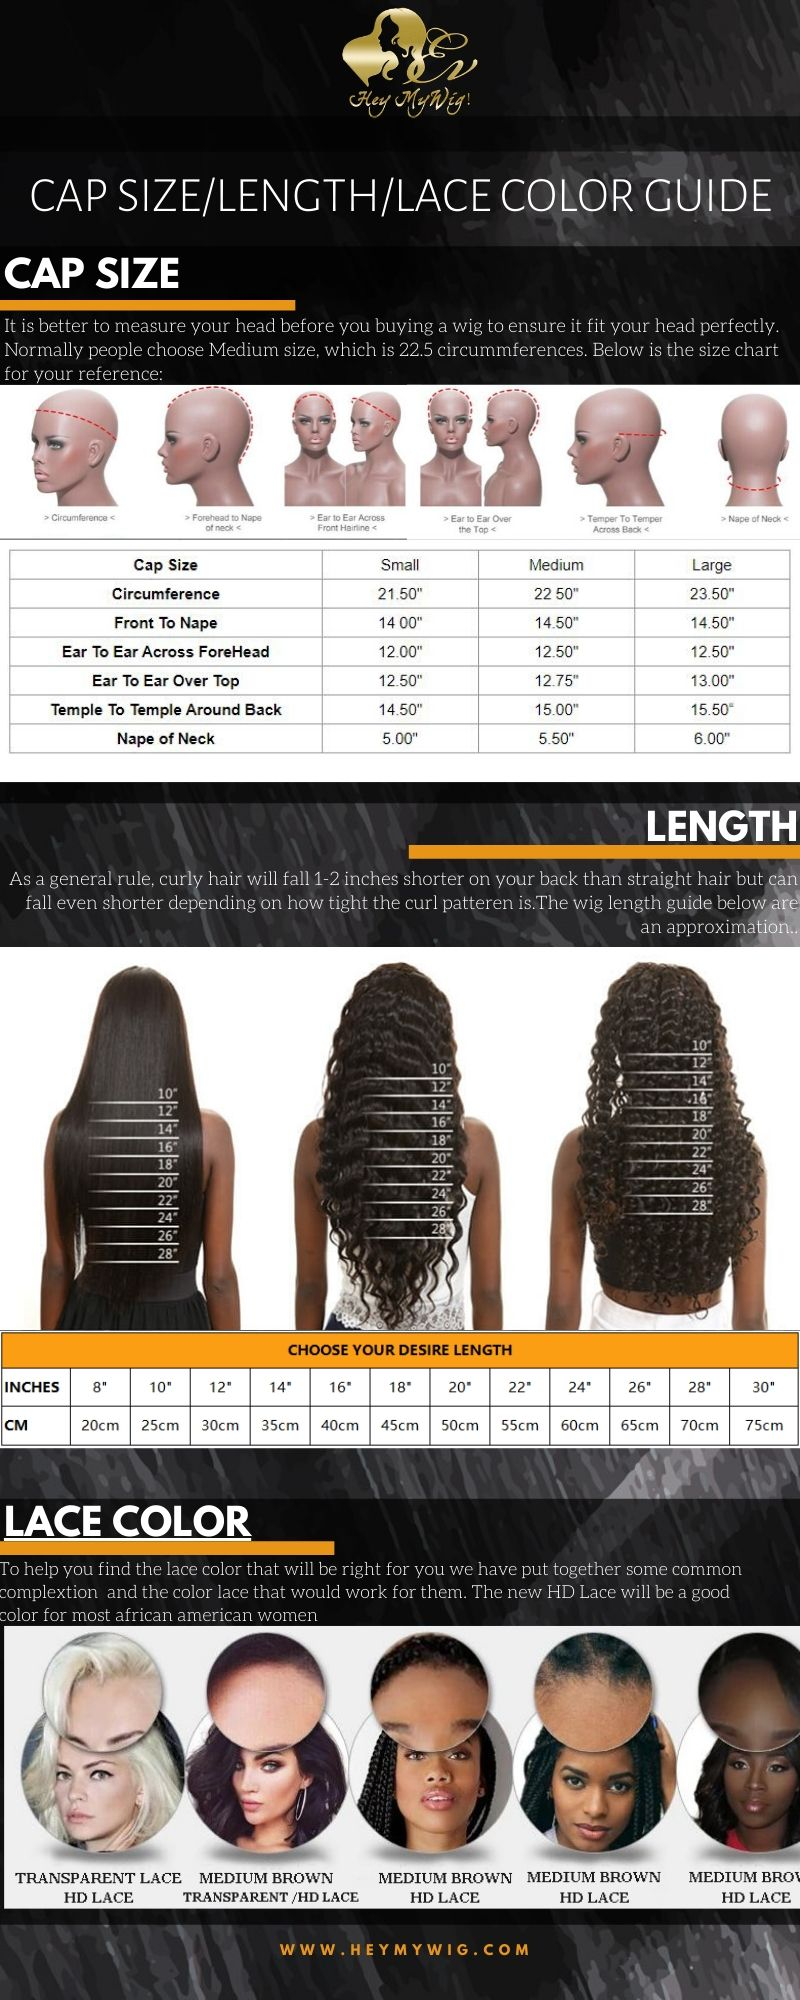 Lace wig cap size head size measurement method wig length inches to cm gudie lace color with matching skin guide heymywig.com